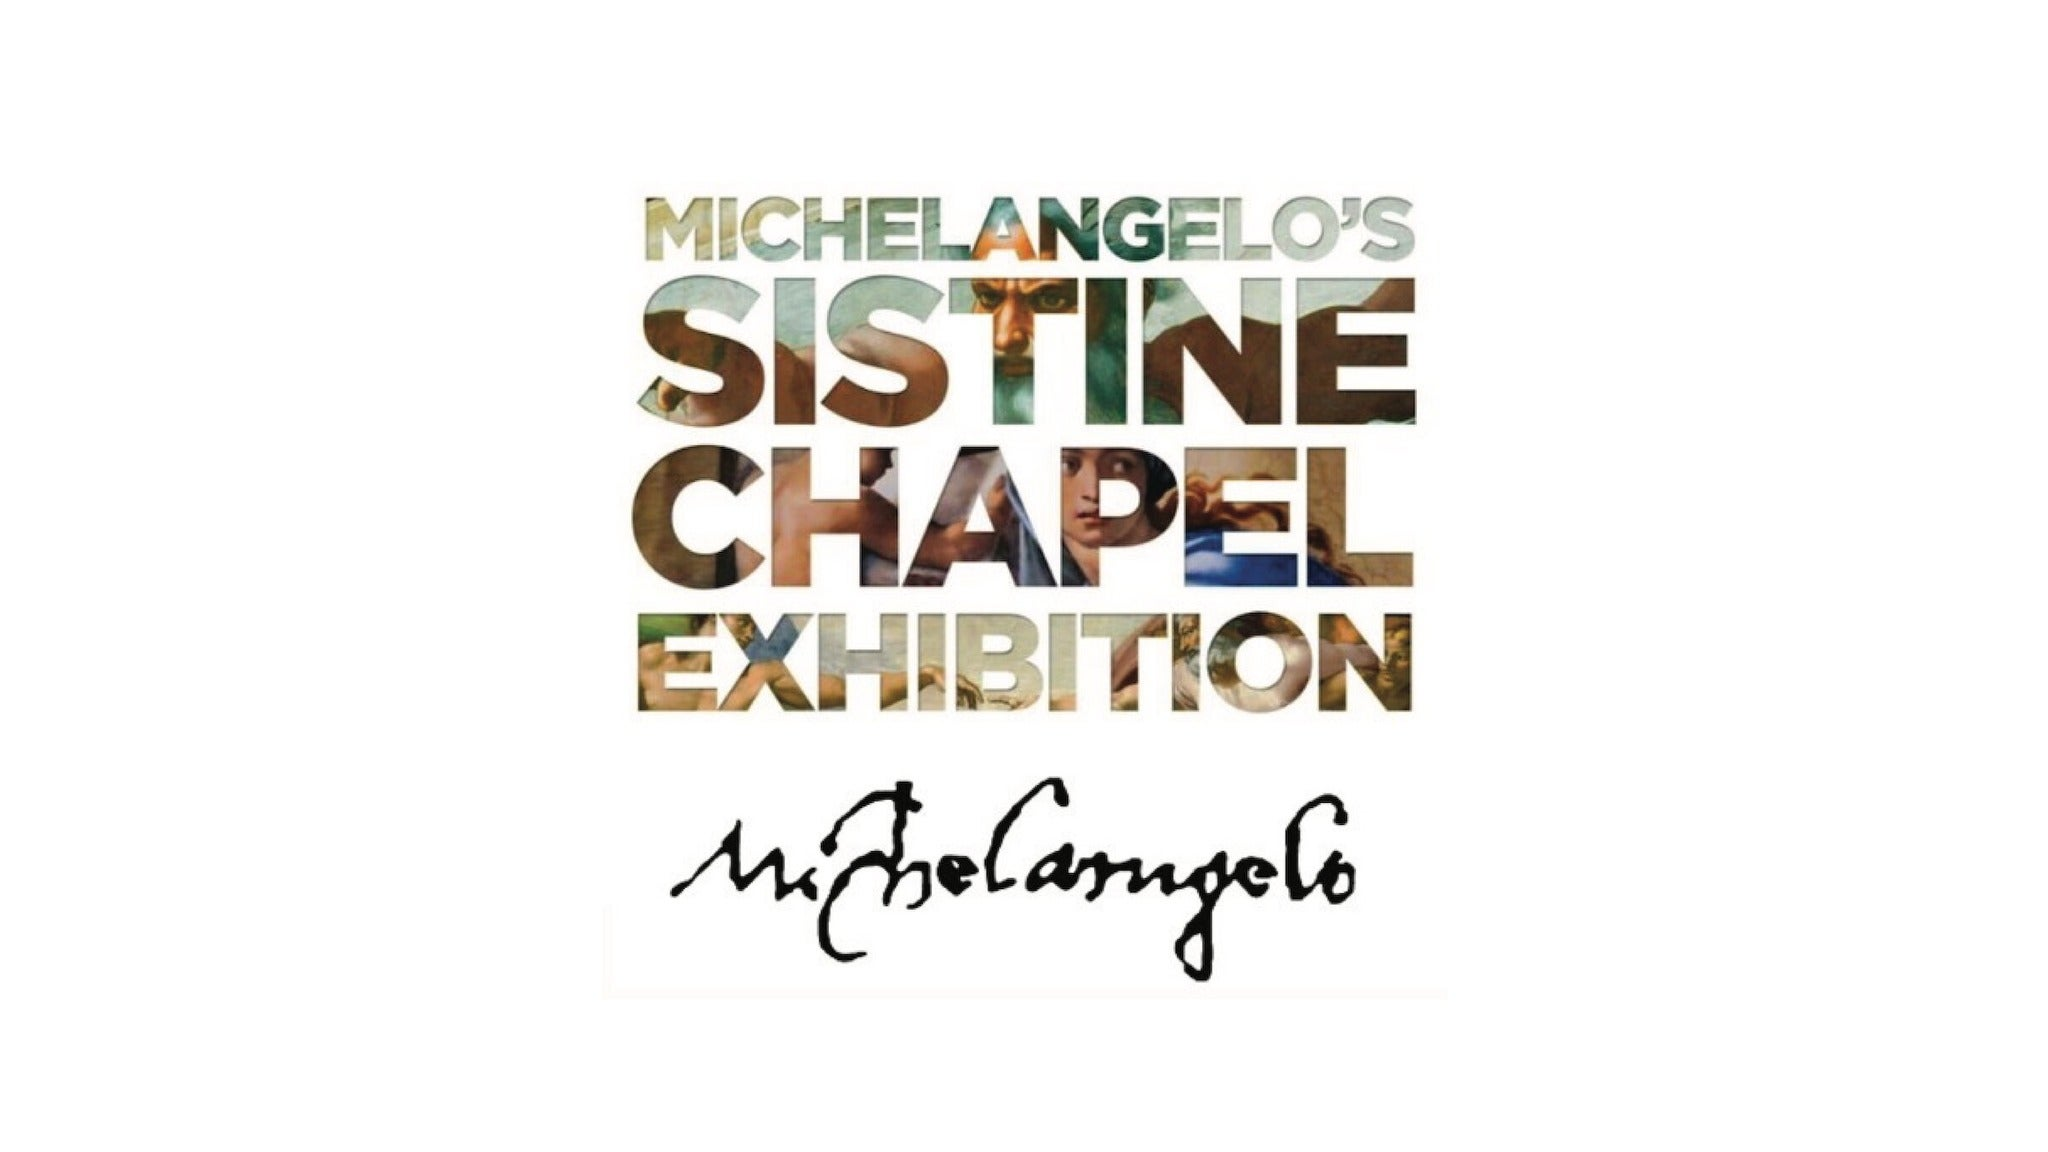 Michelangelo's Sistine Chapel Exhibition at America's Center - St Louis, MO 63101